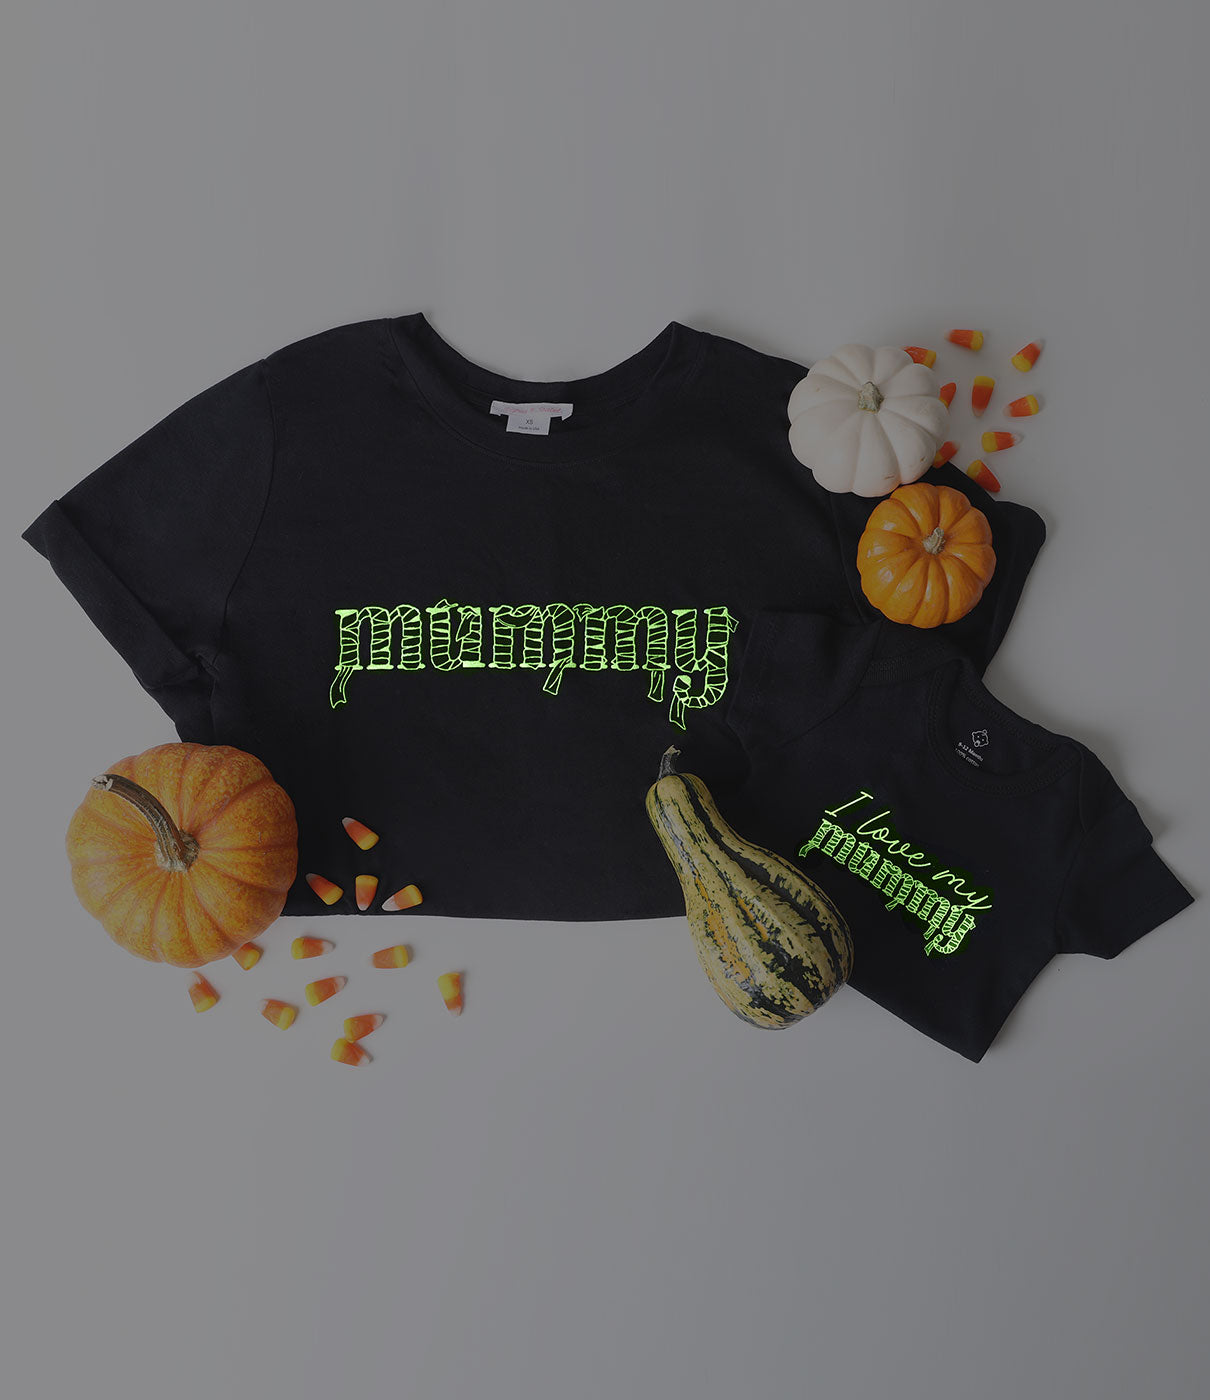 Fashion + FunctionGlow in the Dark printed graphic on 100% cotton ensures a no-fuss Halloween costume with 3 simple snaps for effortless diaper changes.